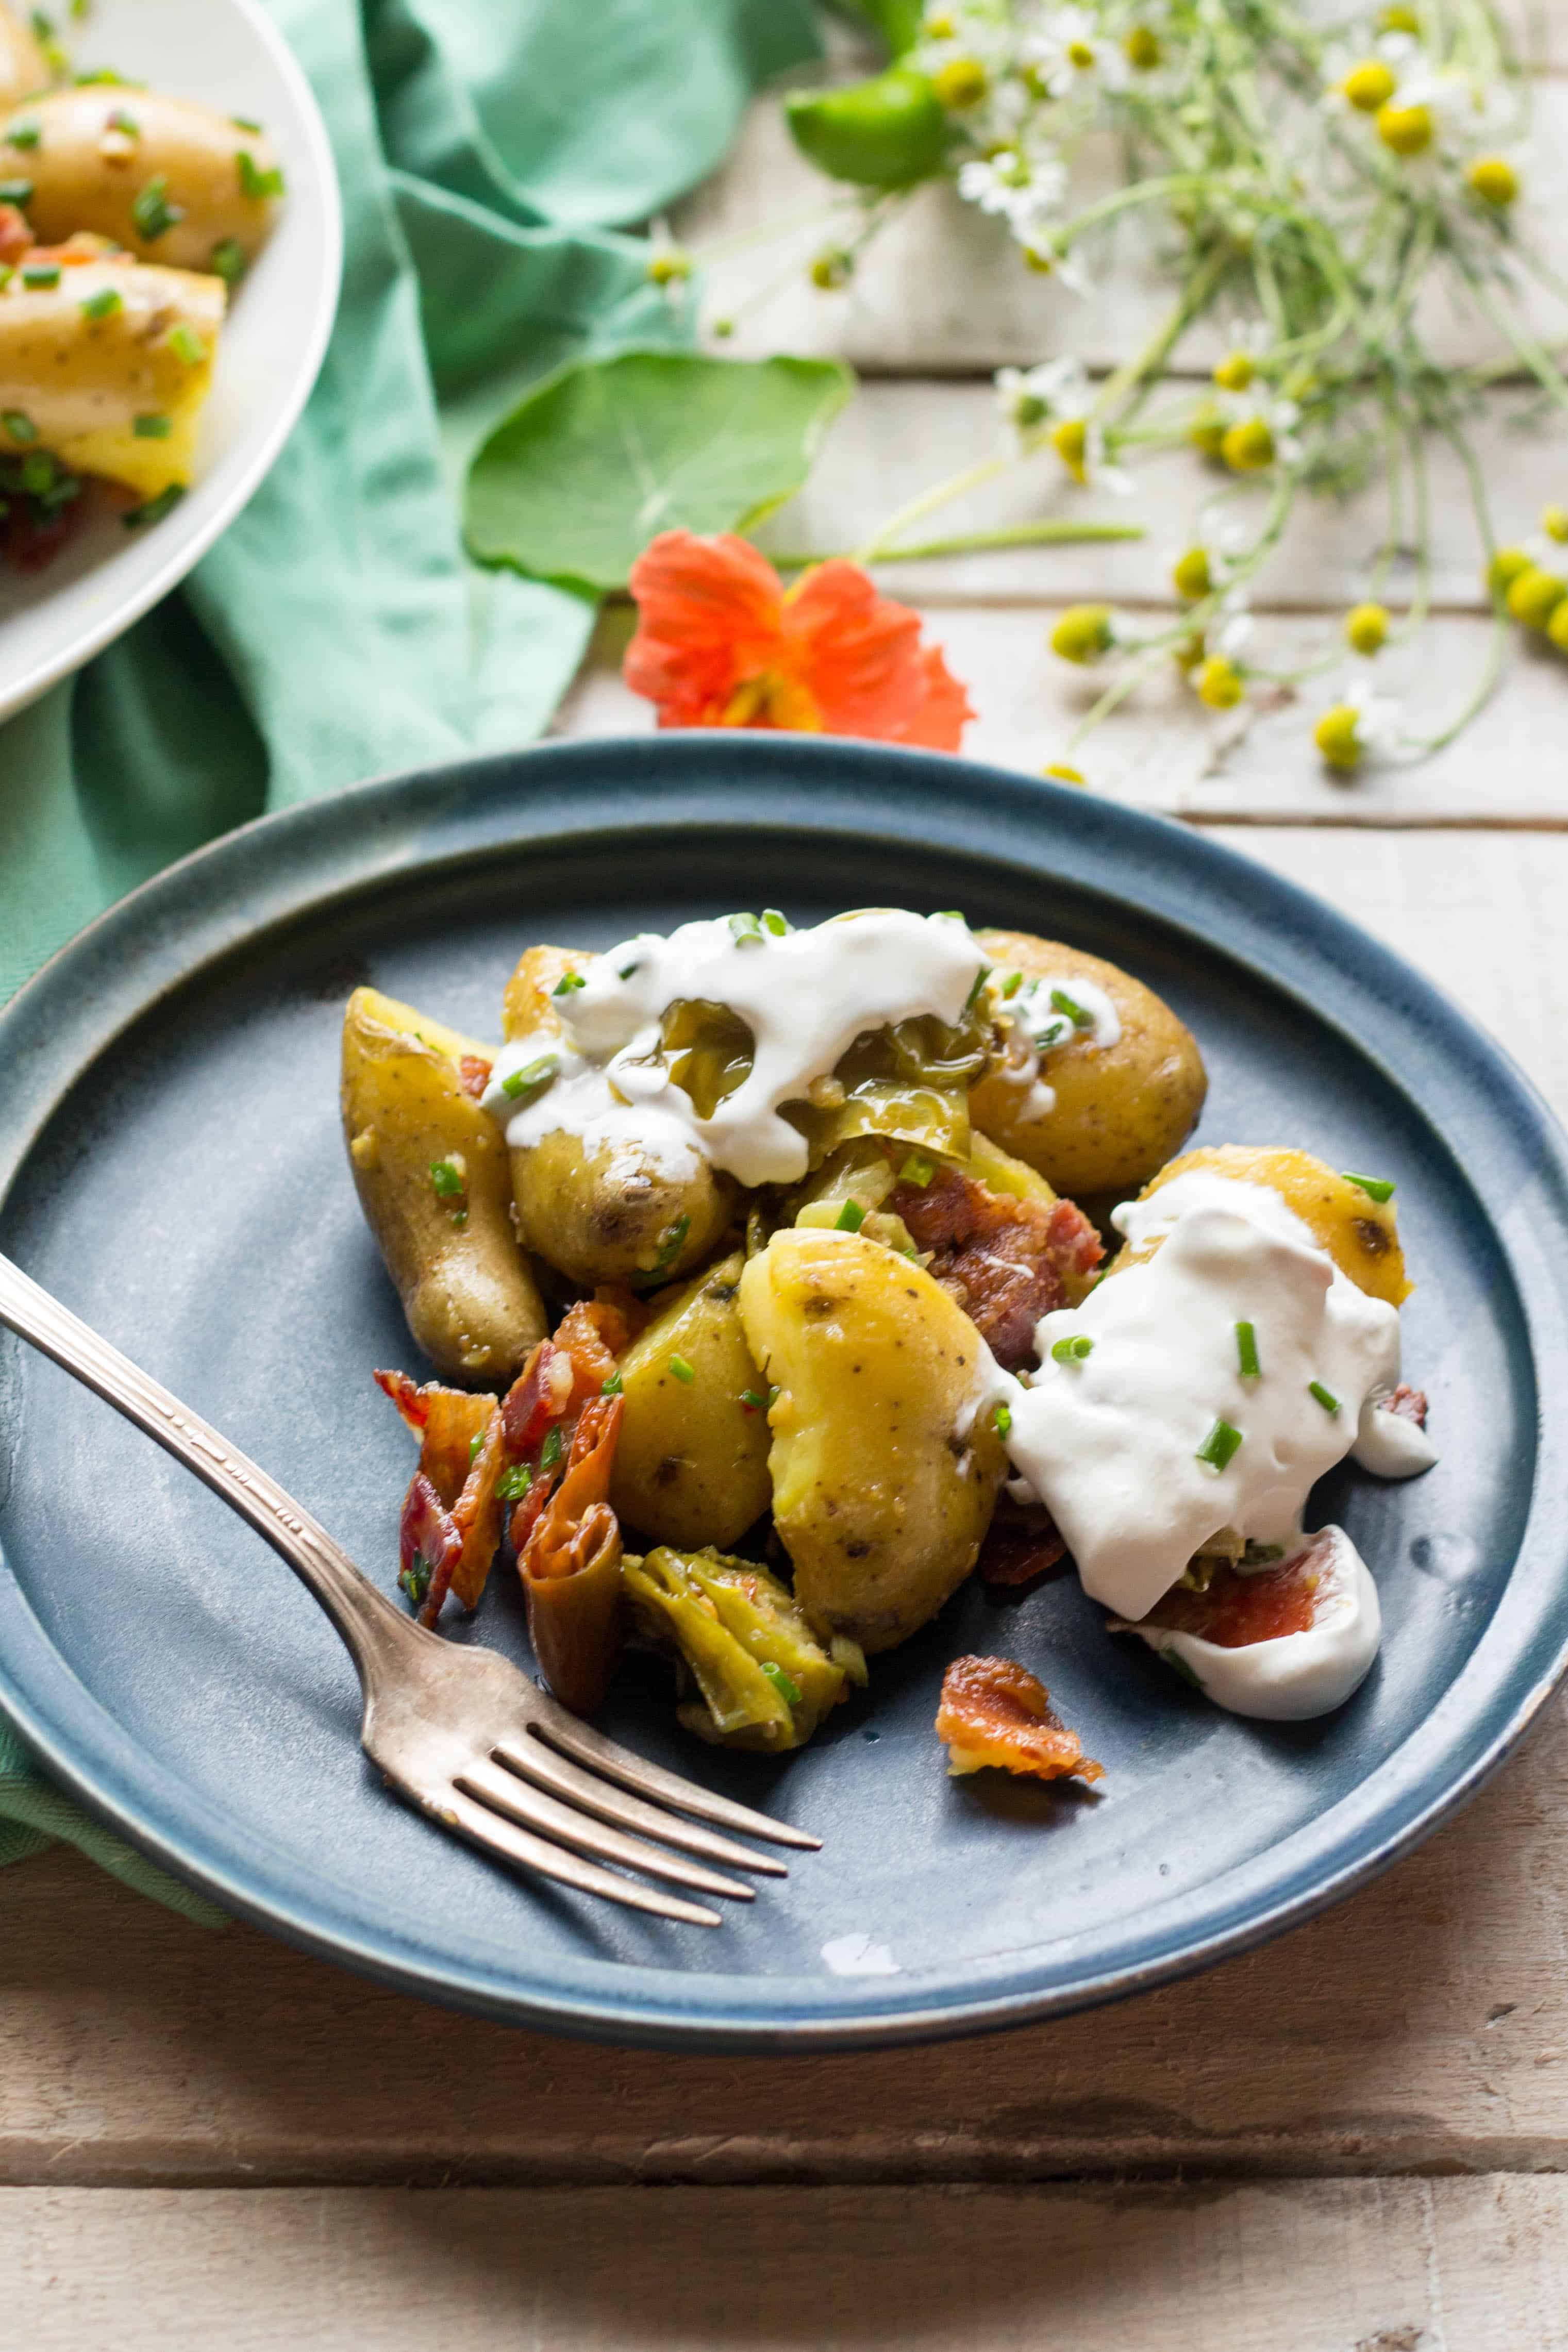 Warm golden potato salad with bacon and peppers on a blue dinner plate.